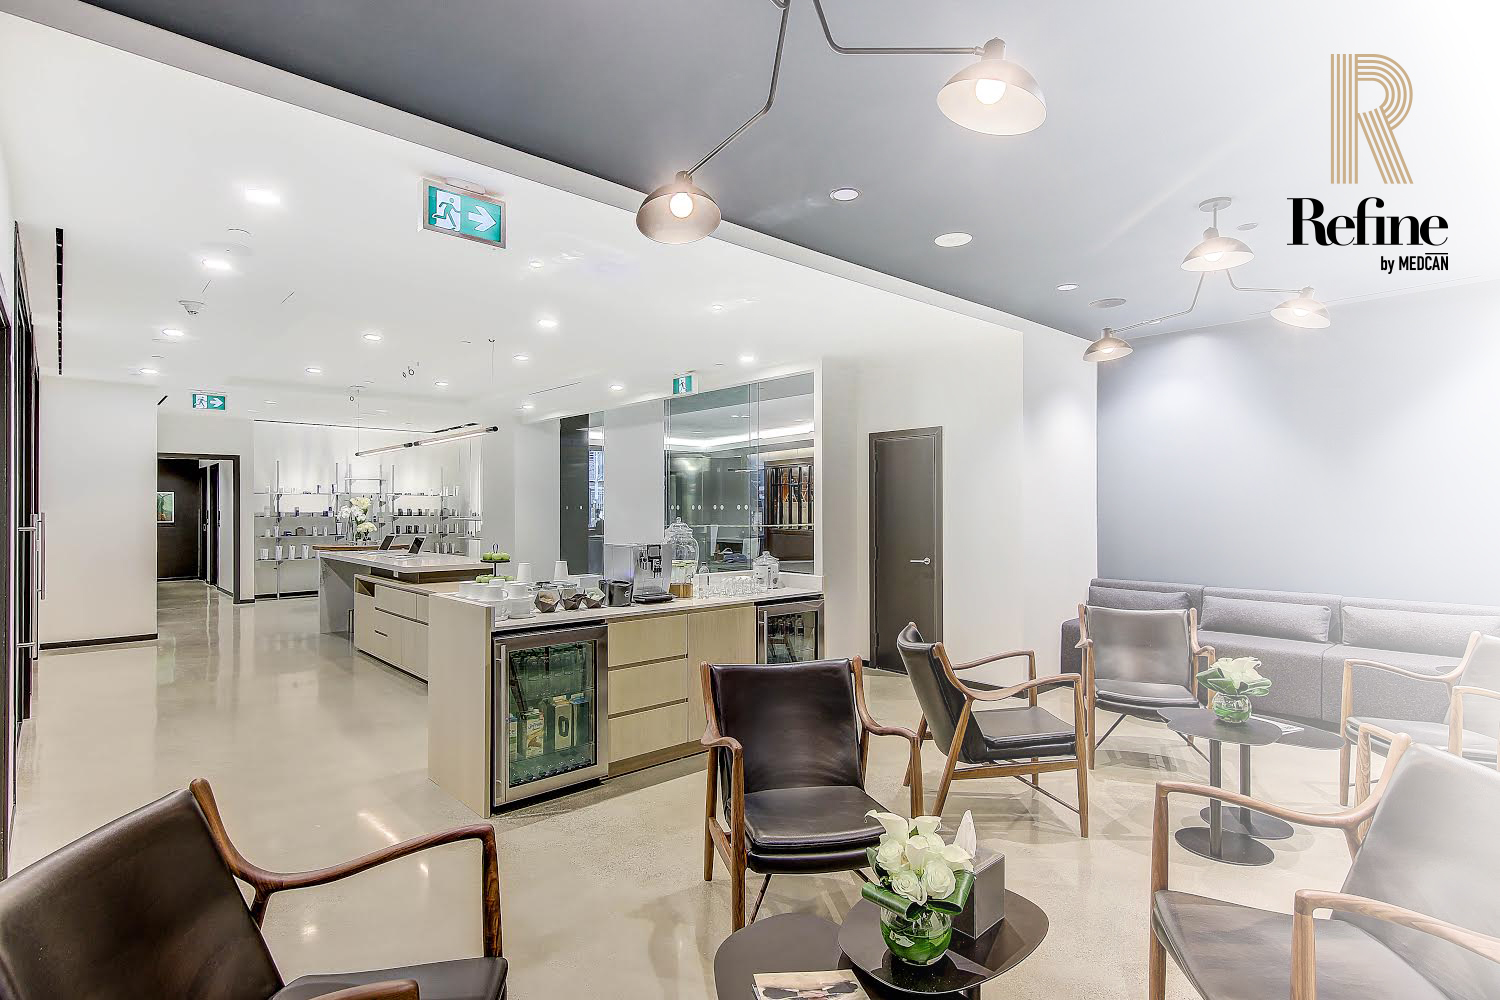 Refine clinic space at 150 York Street in Toronto.